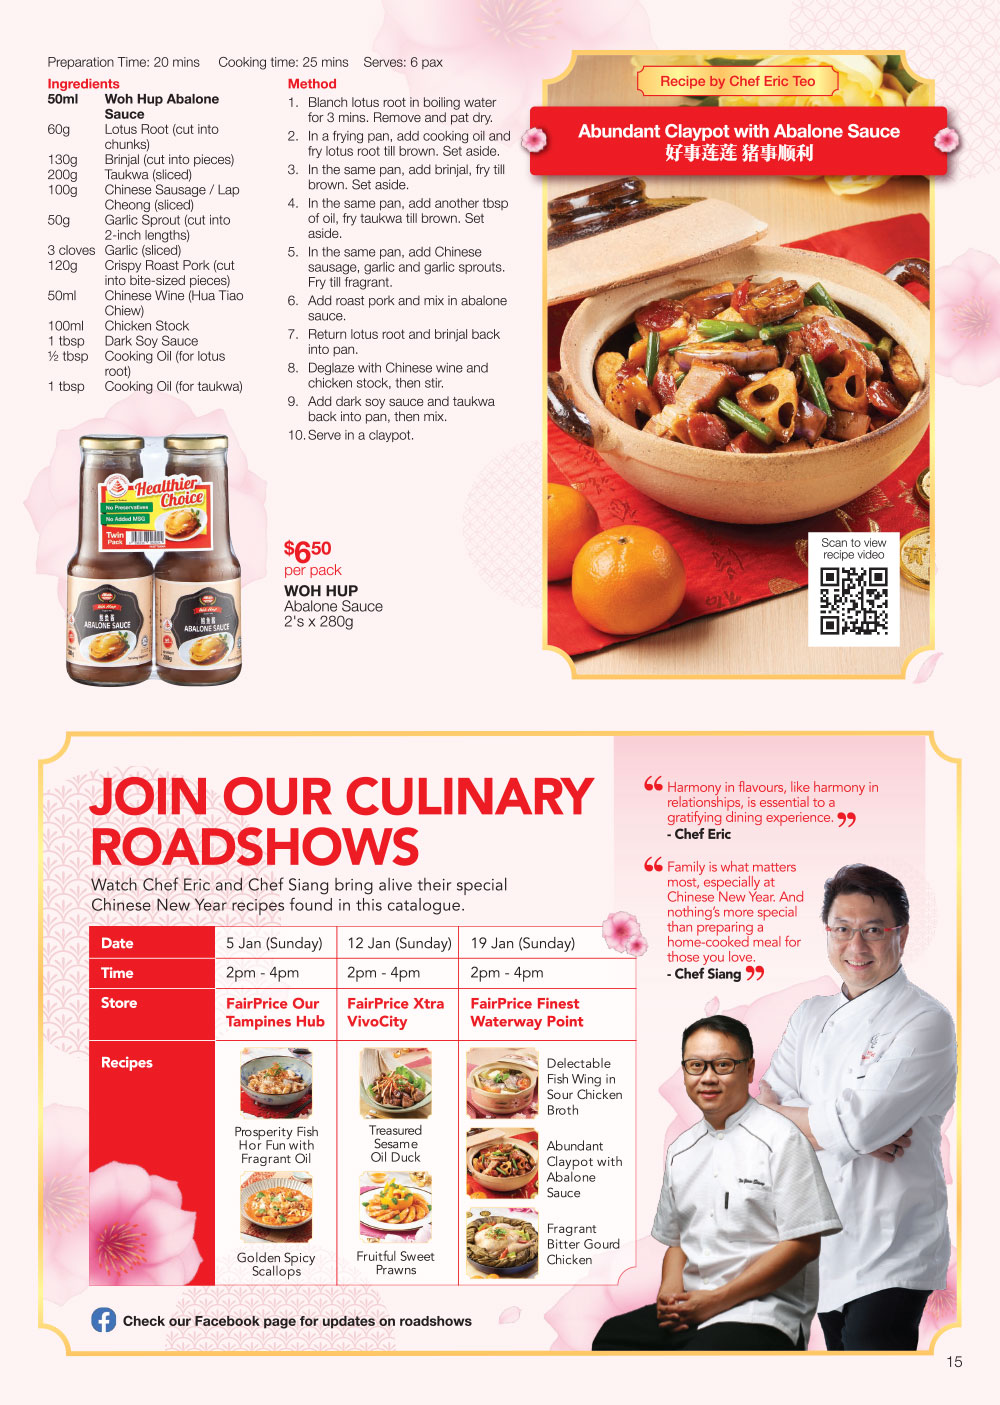 FairPrice Chinese New Year Catalogue Recipes